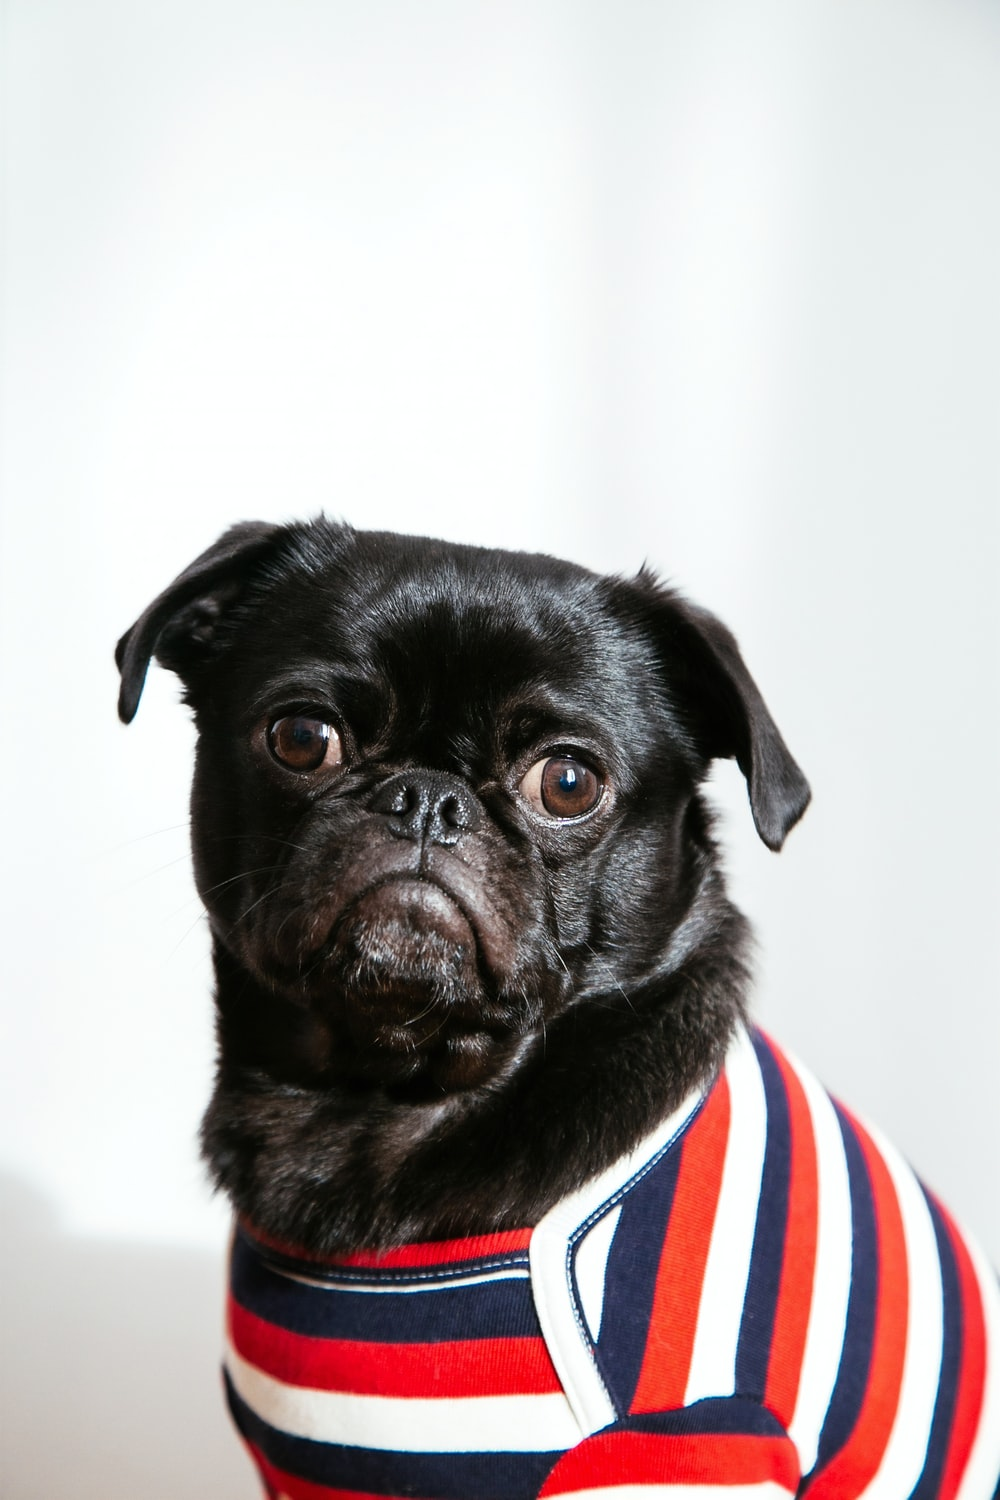 black dog wearing blue, red, and white shirt